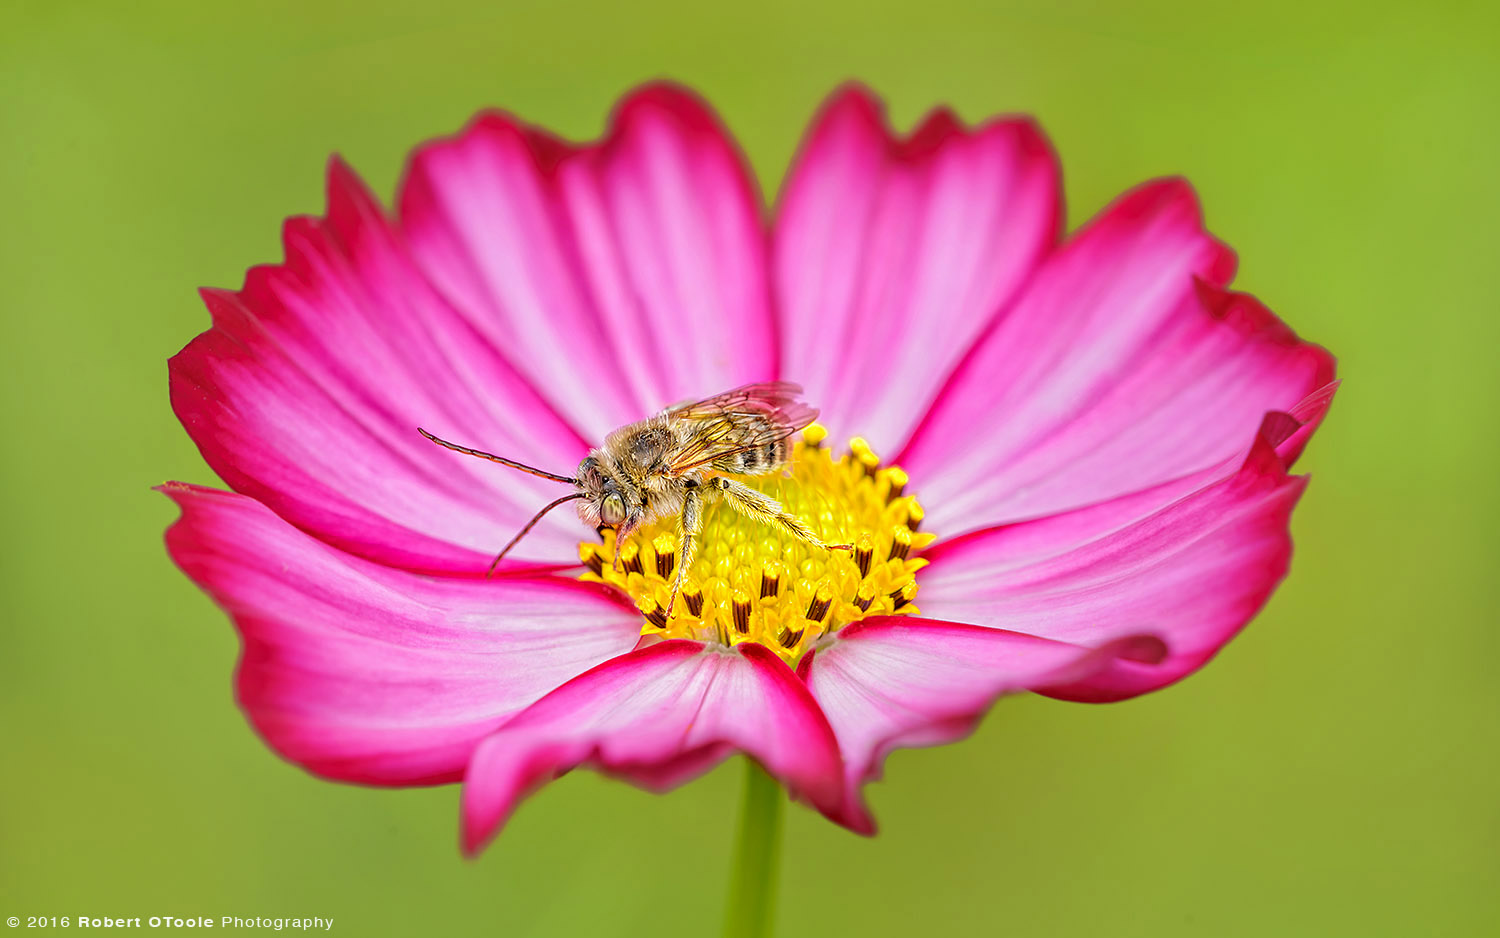 Long Horn Bee on Bicolor Pink Cosmos Flower